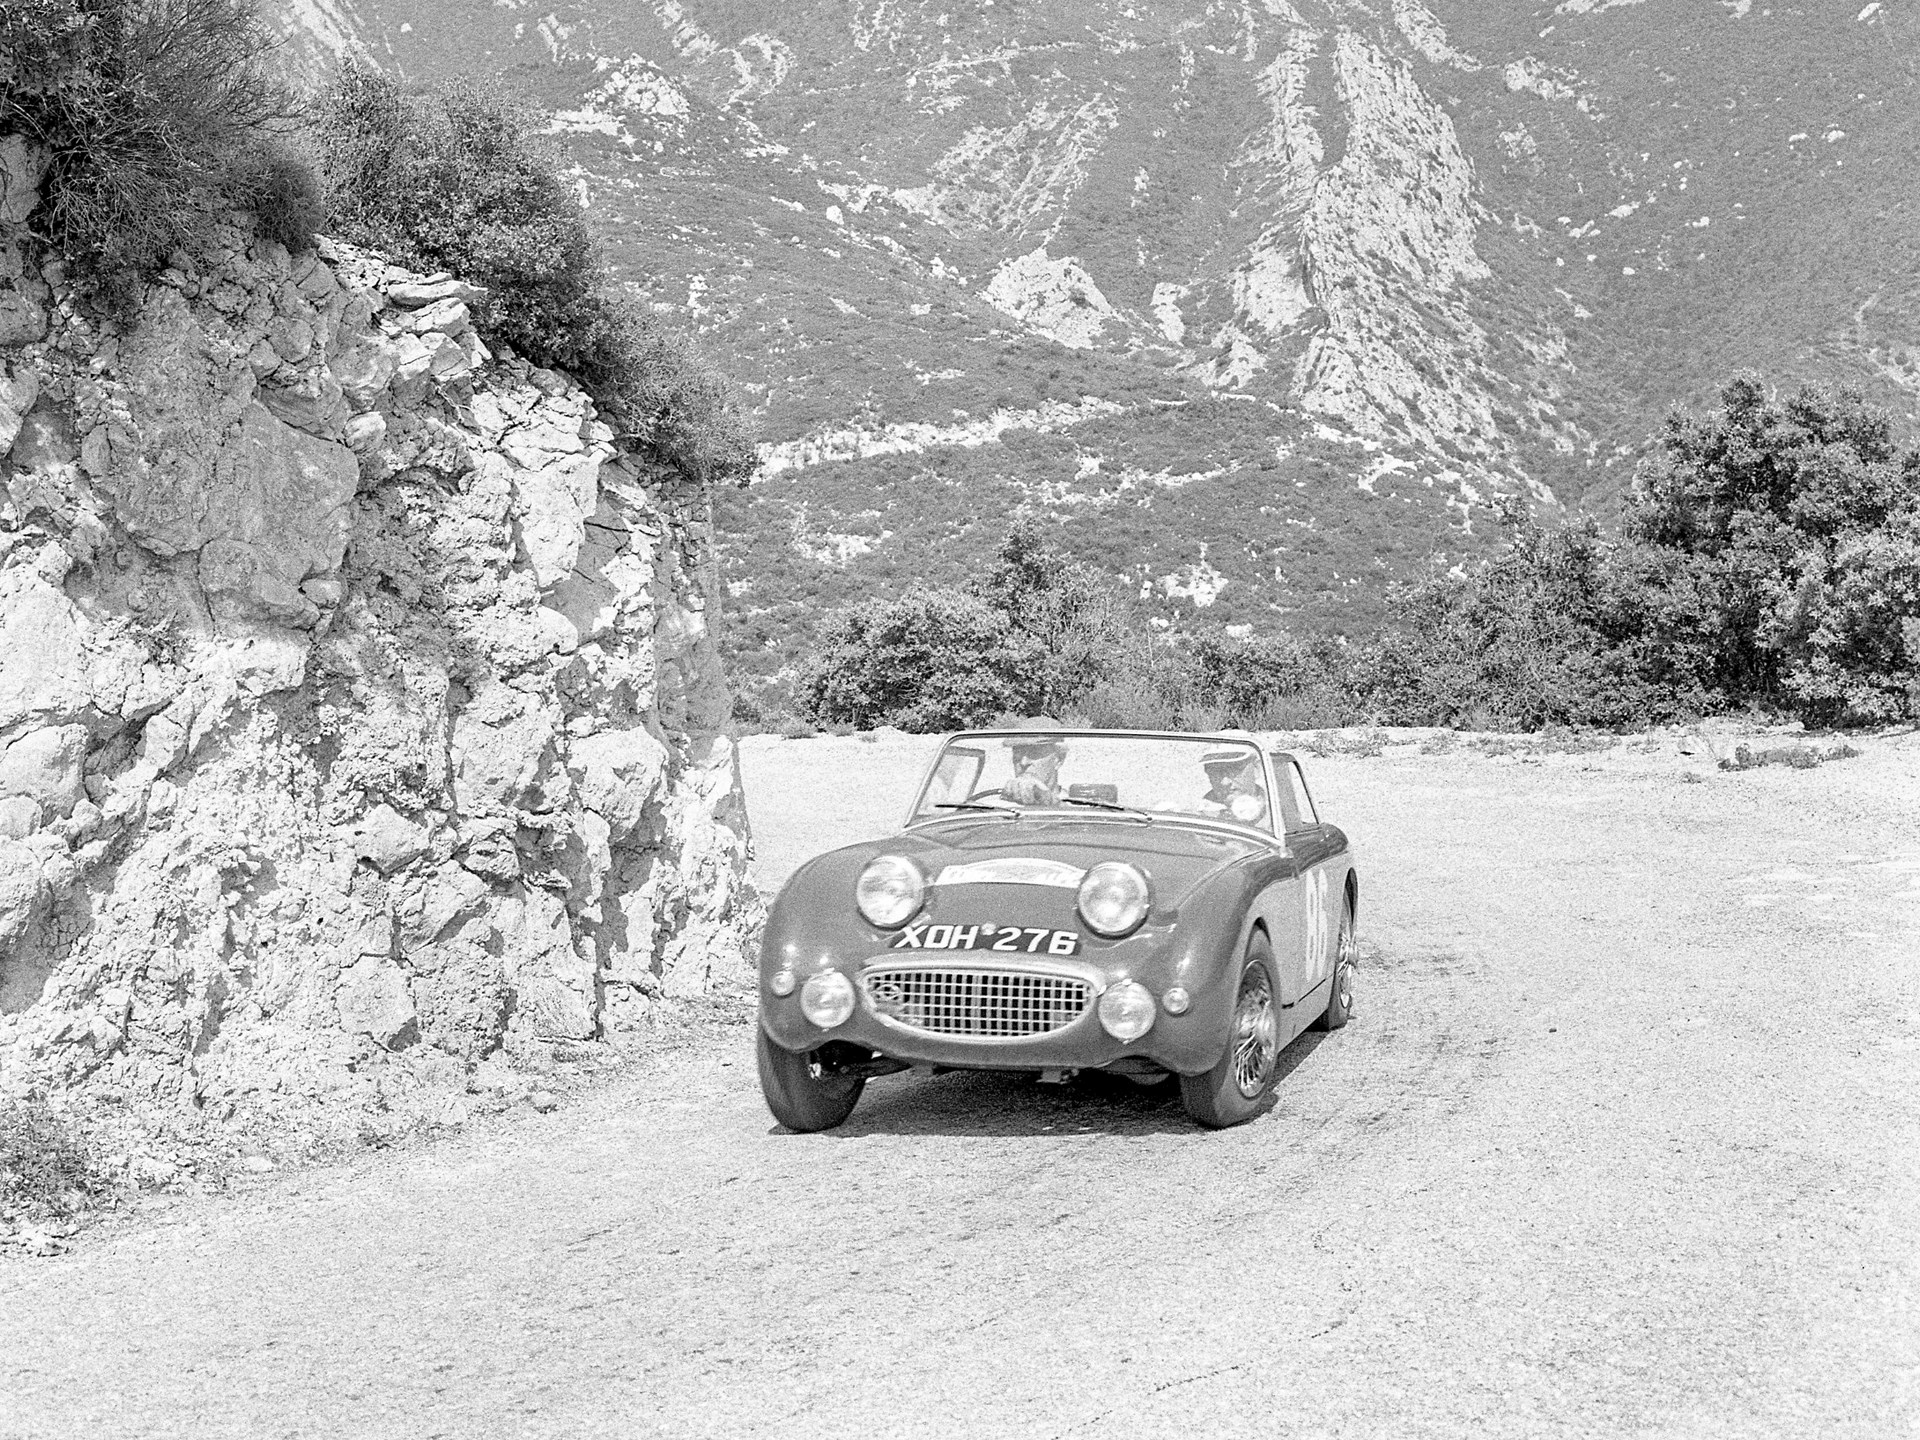 The Austin Healey at the 1959 Alpine Rally where it finished second in class.